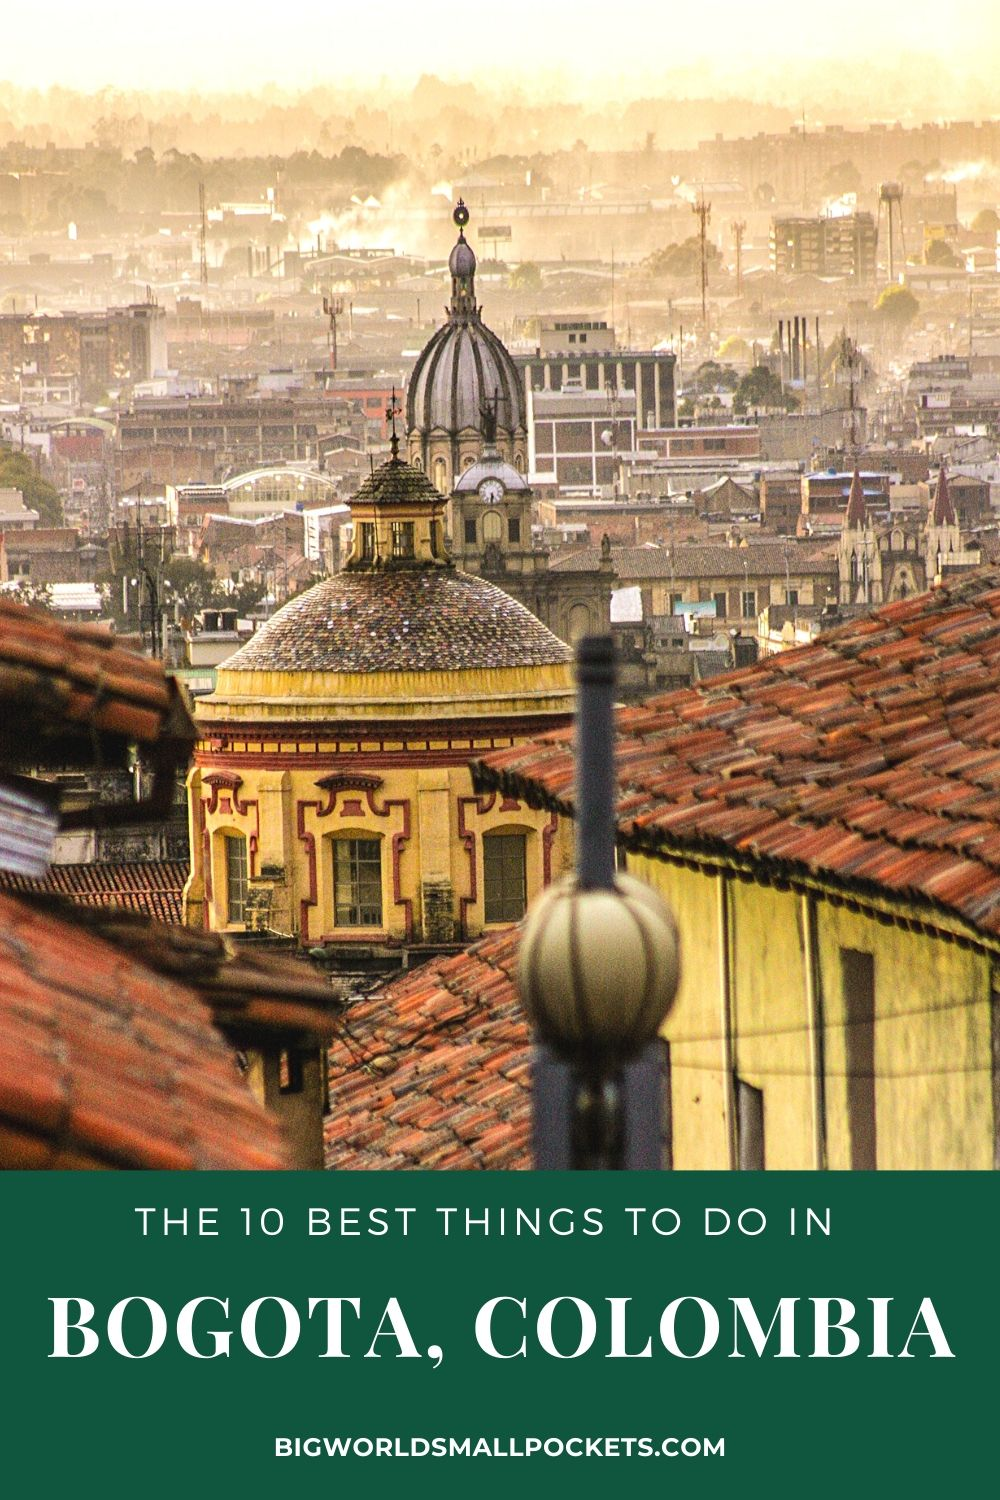 10 Best Things to do in Bogota, Colombia